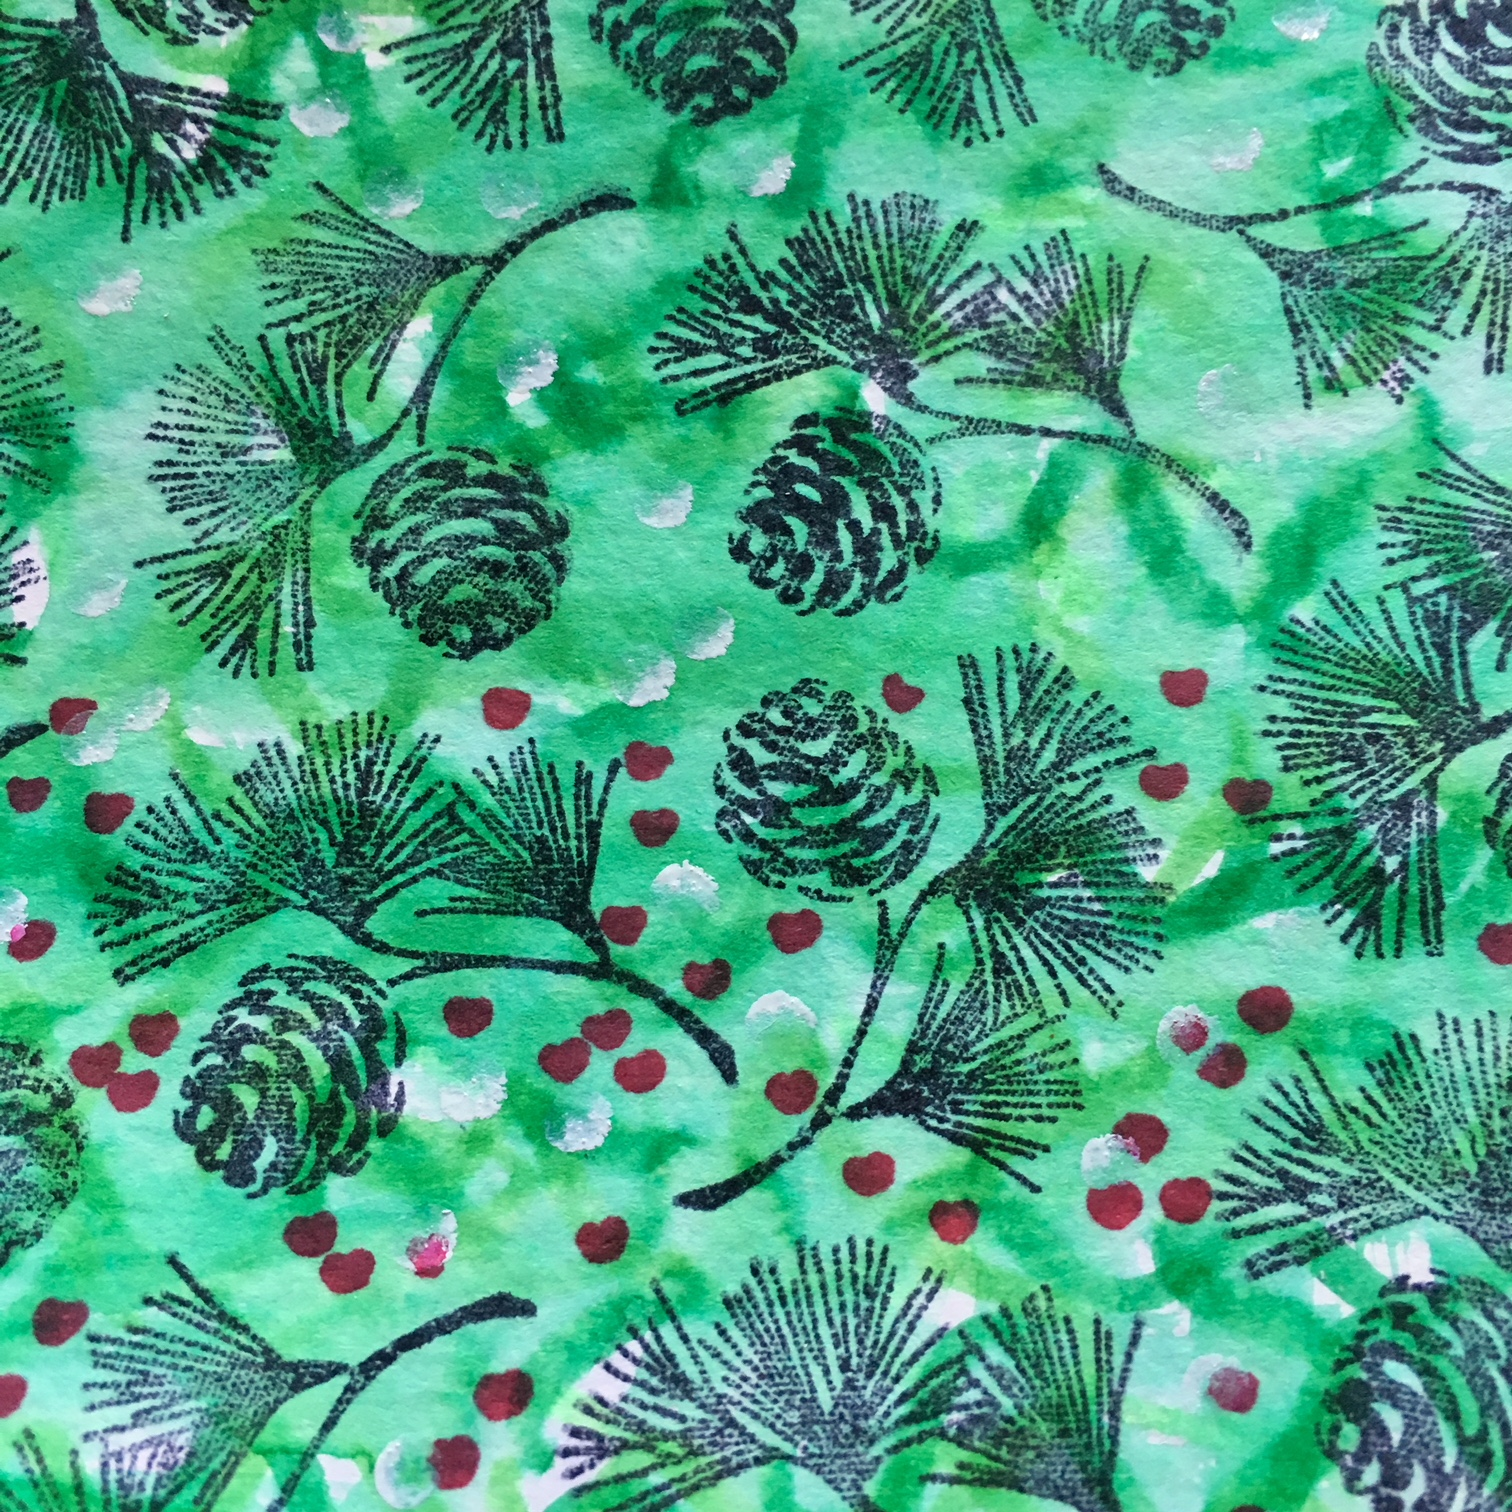 green watercolour background with pine branches stamping and red marker dots